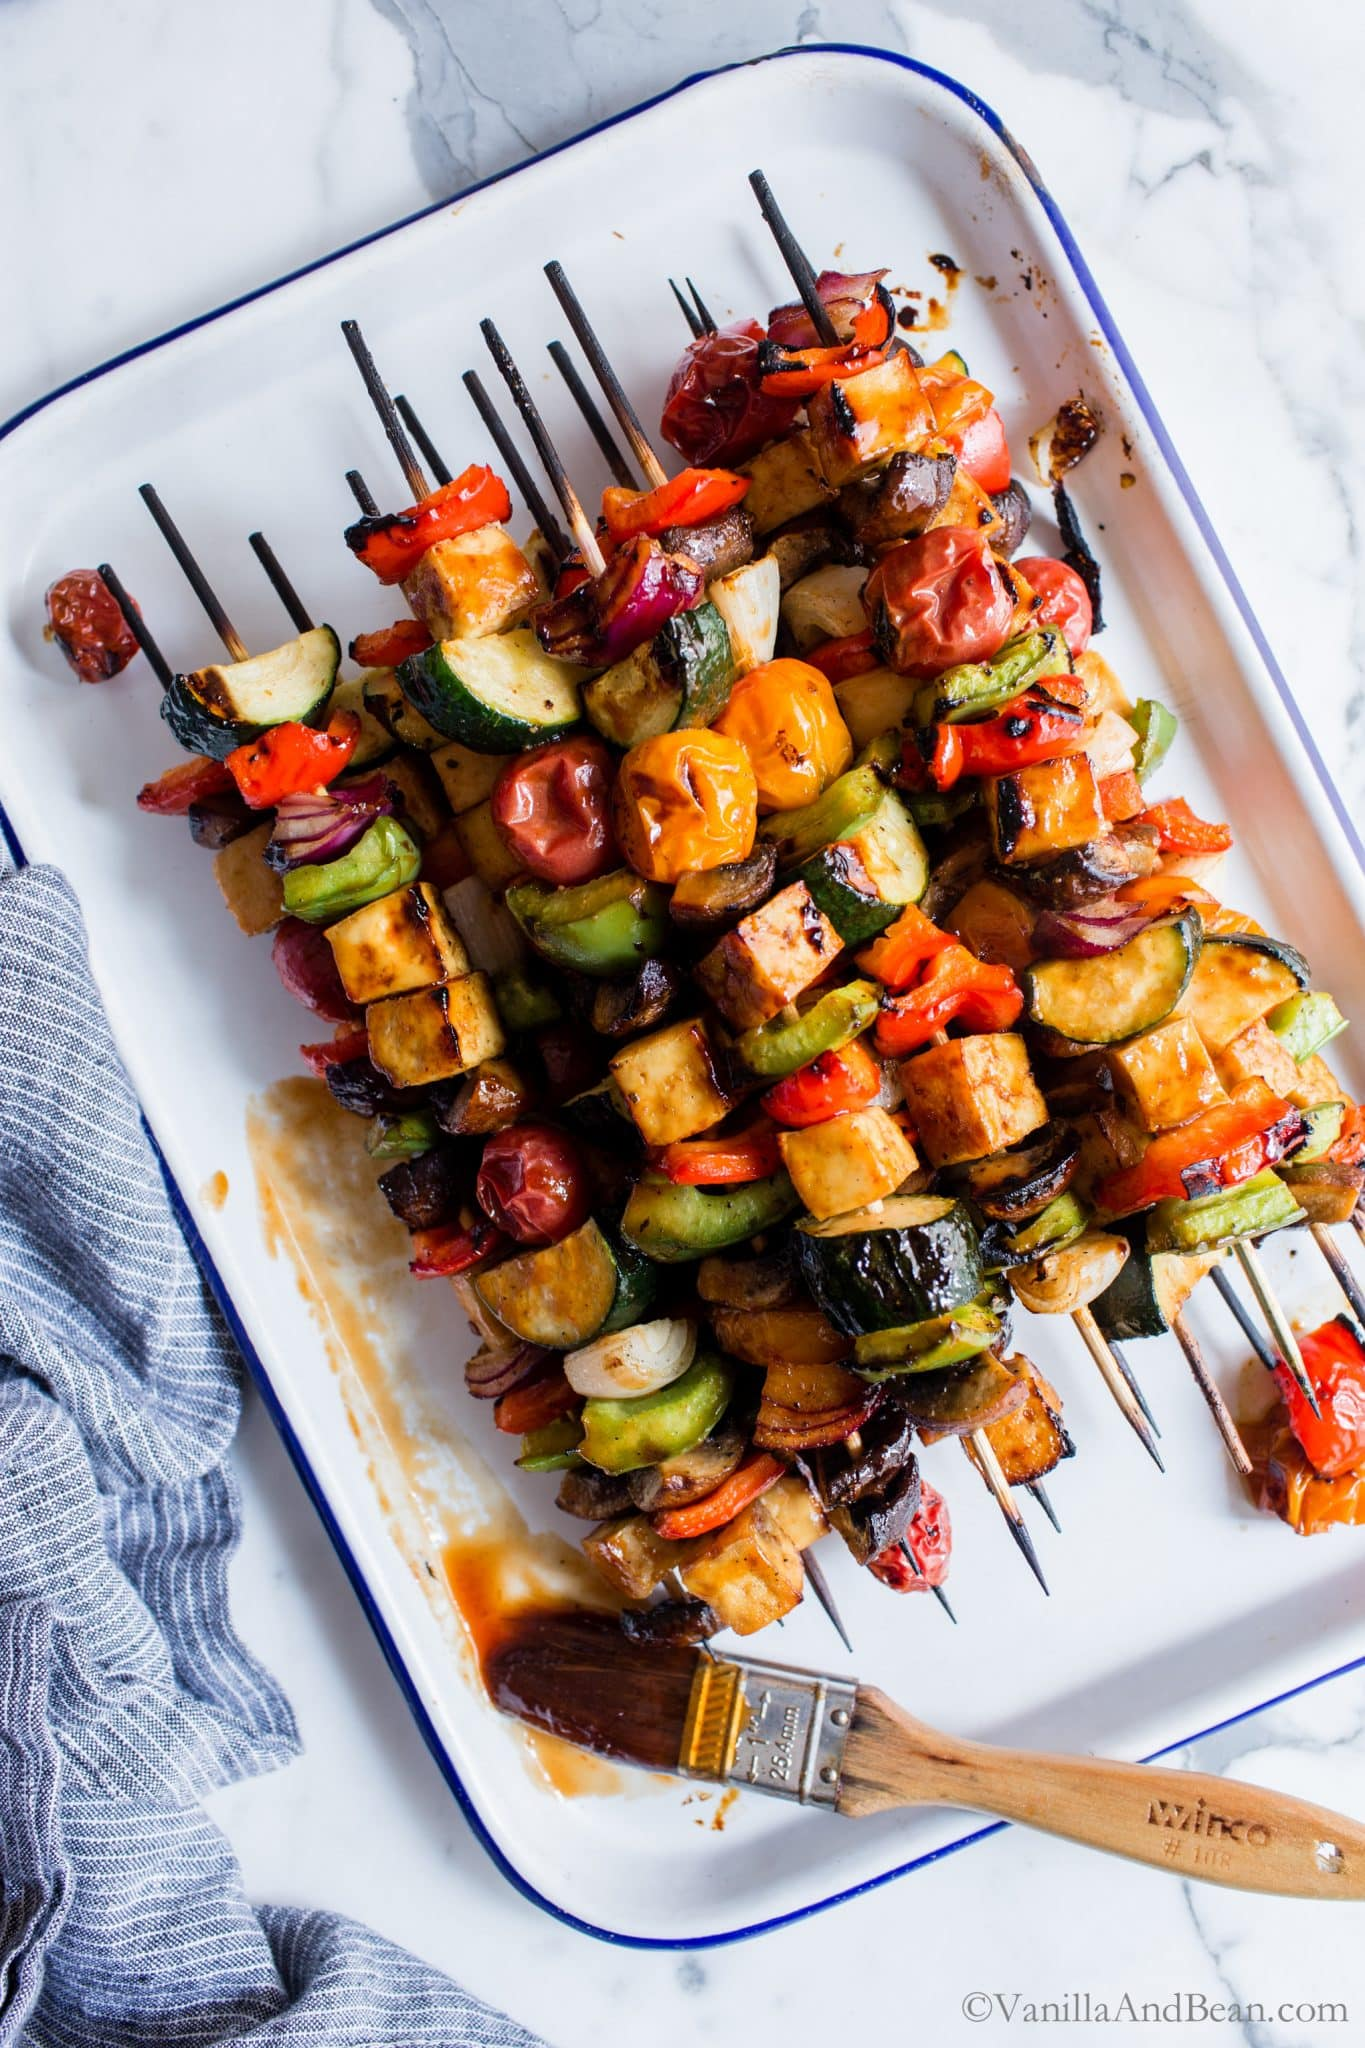 Saucy, tangy and so flavorful Grilled BBQ Tofu Vegetable Kebabs are simple to make and packed with late summer favorites! #veganfood #glutenfree #GrilledTofu #GrilledVegetables #BBQ